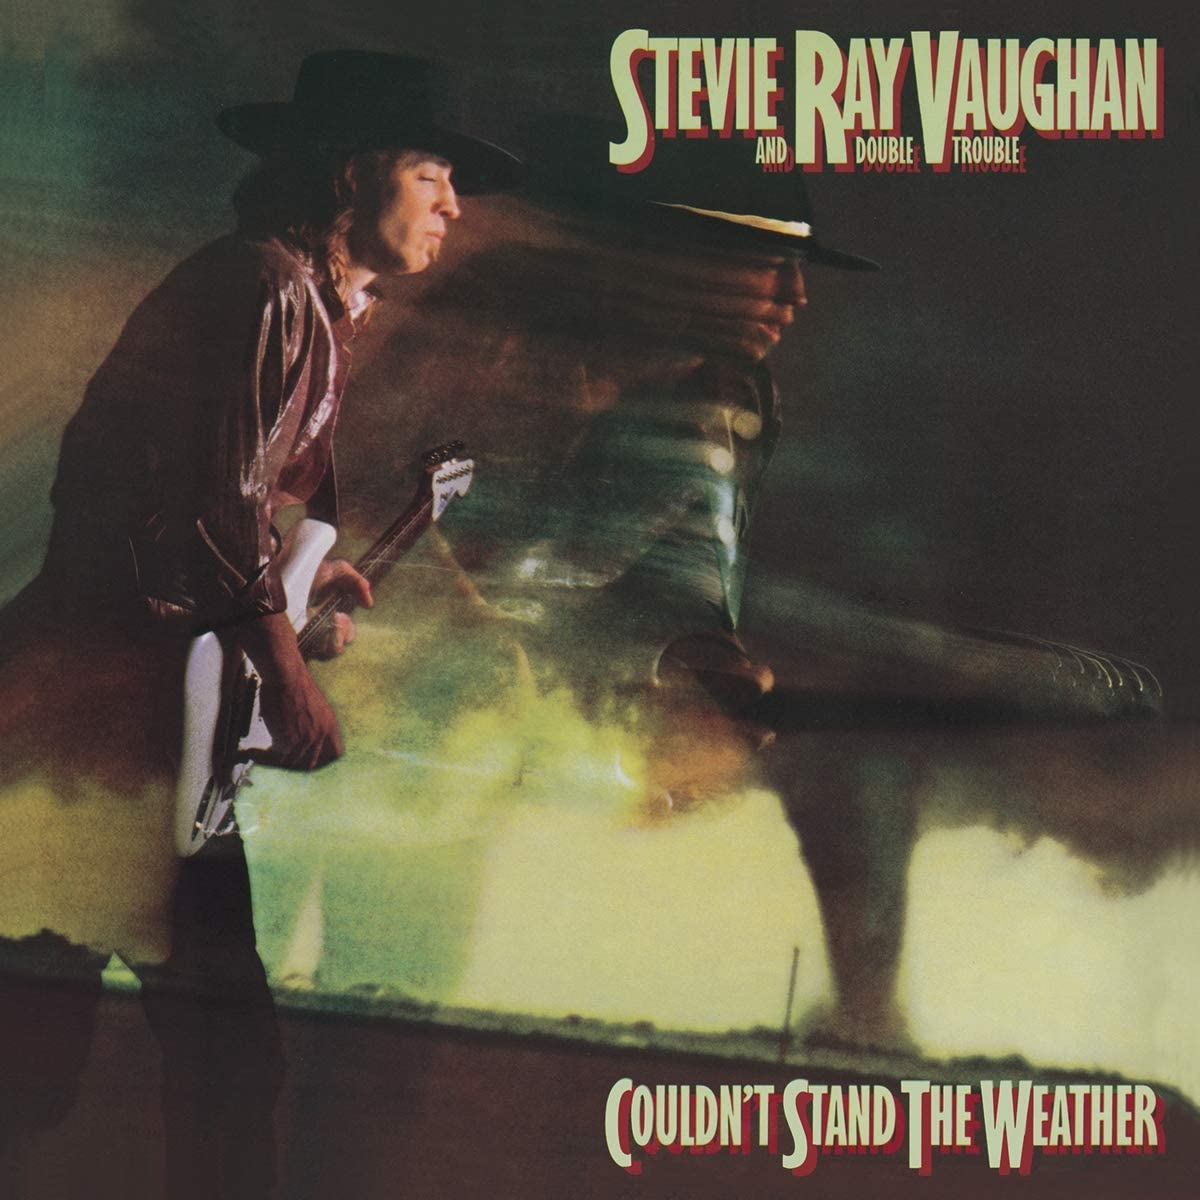 Vaughan, Stevie Ray/Couldn't Stand the Weather (2LP Colour Vinyl) [LP]